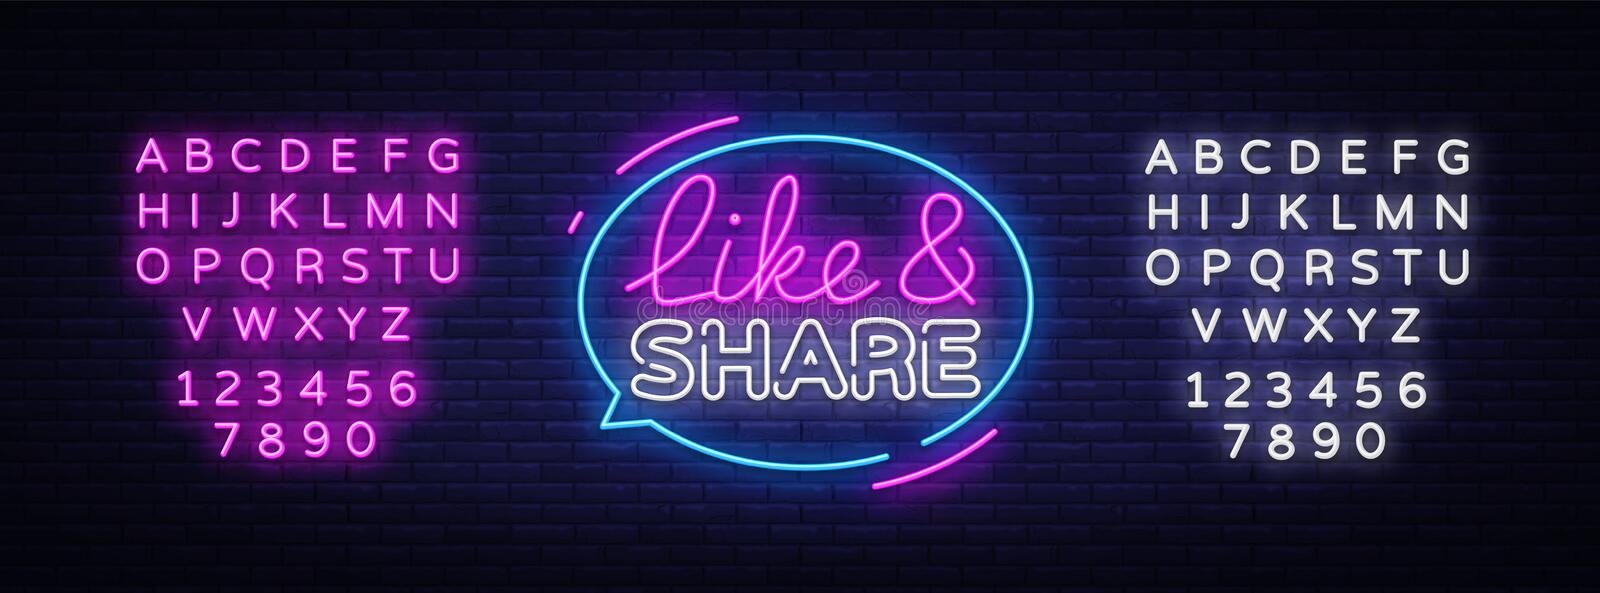 Like Share neon sign vector design template. Social networks neon text, light banner design element colorful modern royalty free illustration